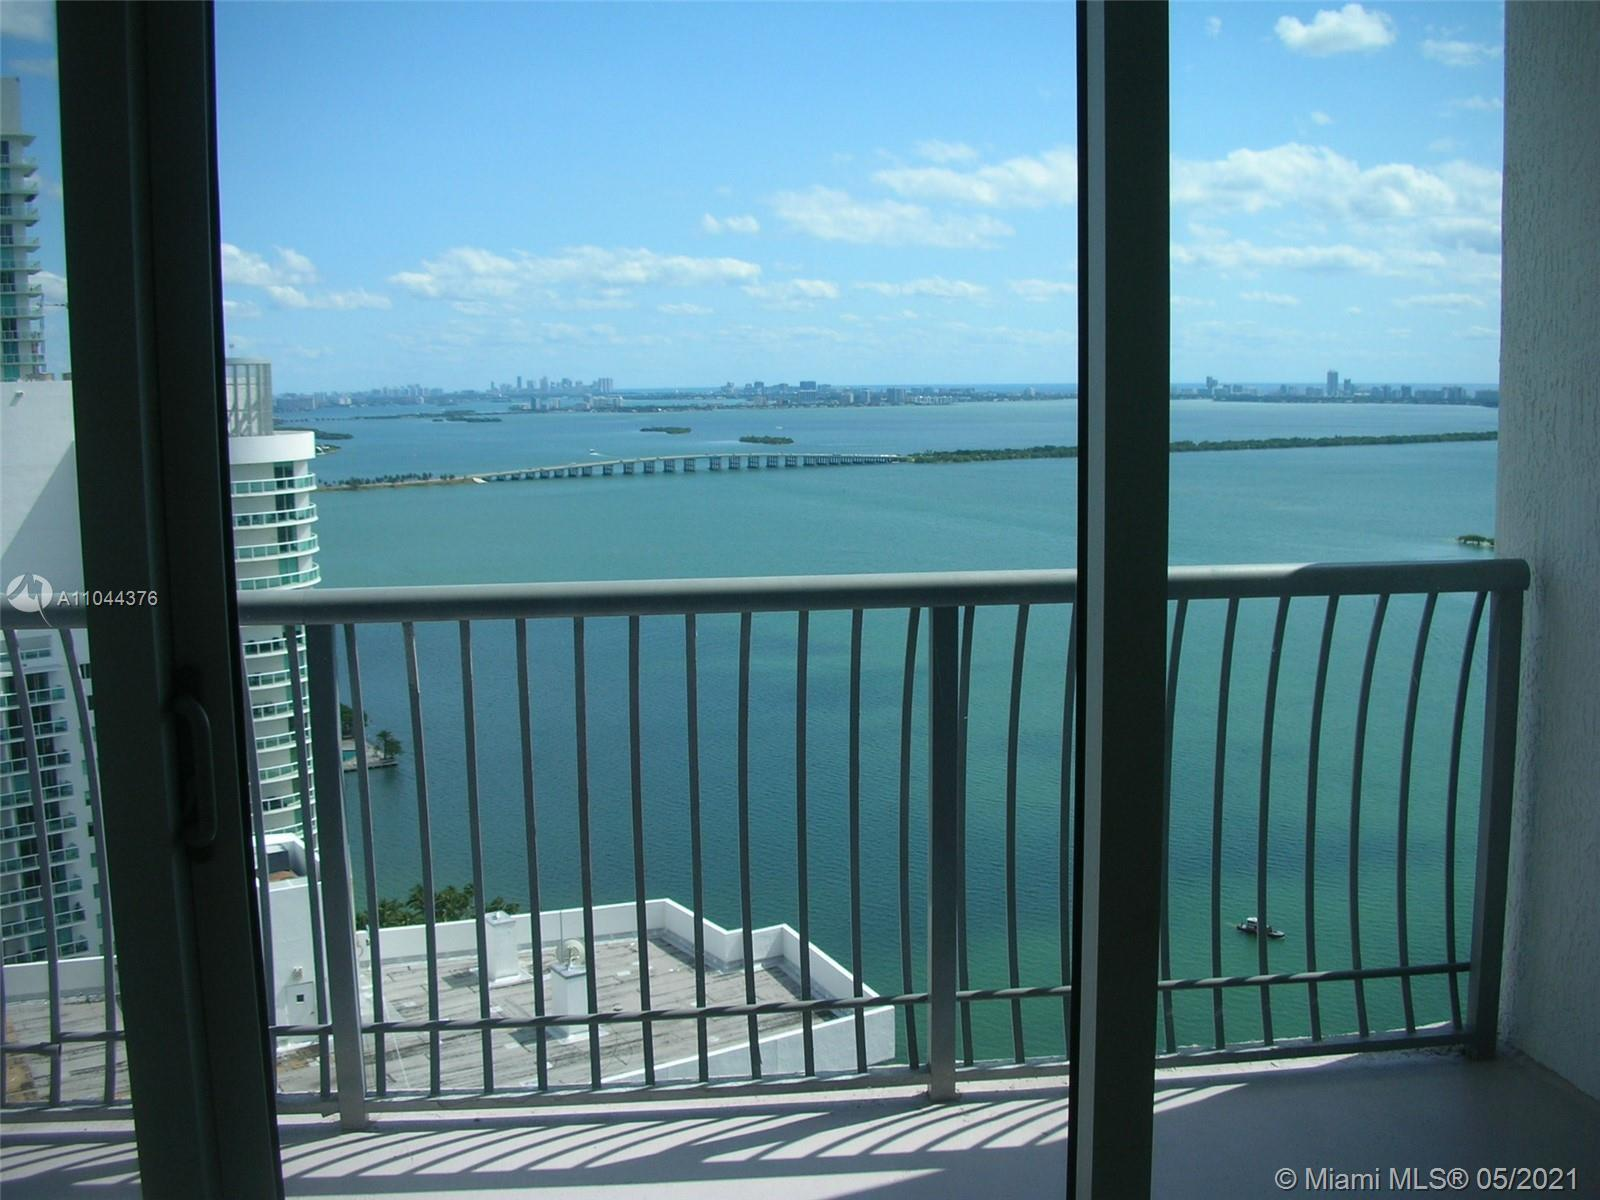 BEAUTIFUL UNIT IN VERY DESIRABLE OPERA TOWER, DOWNTOWN MIAMI. THIS IS A TRULY SPECTACULAR UNIT. THE